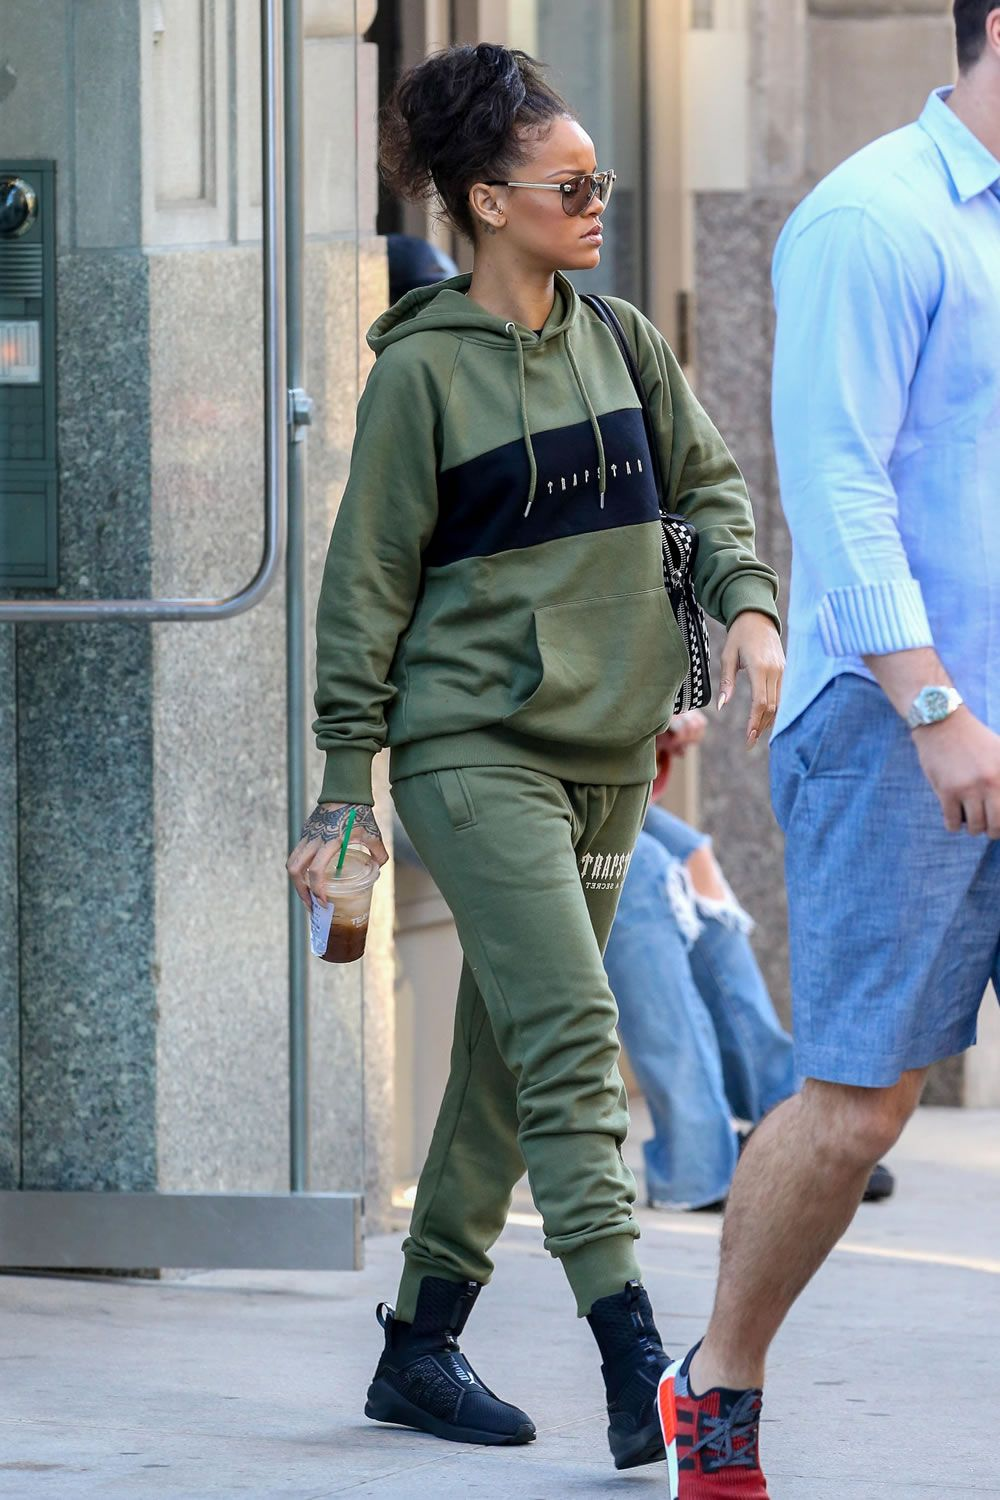 96b8f7d9e321 Outfits inspired in Rihanna's style | BadGalRiRi in 2019 | Rihanna ...